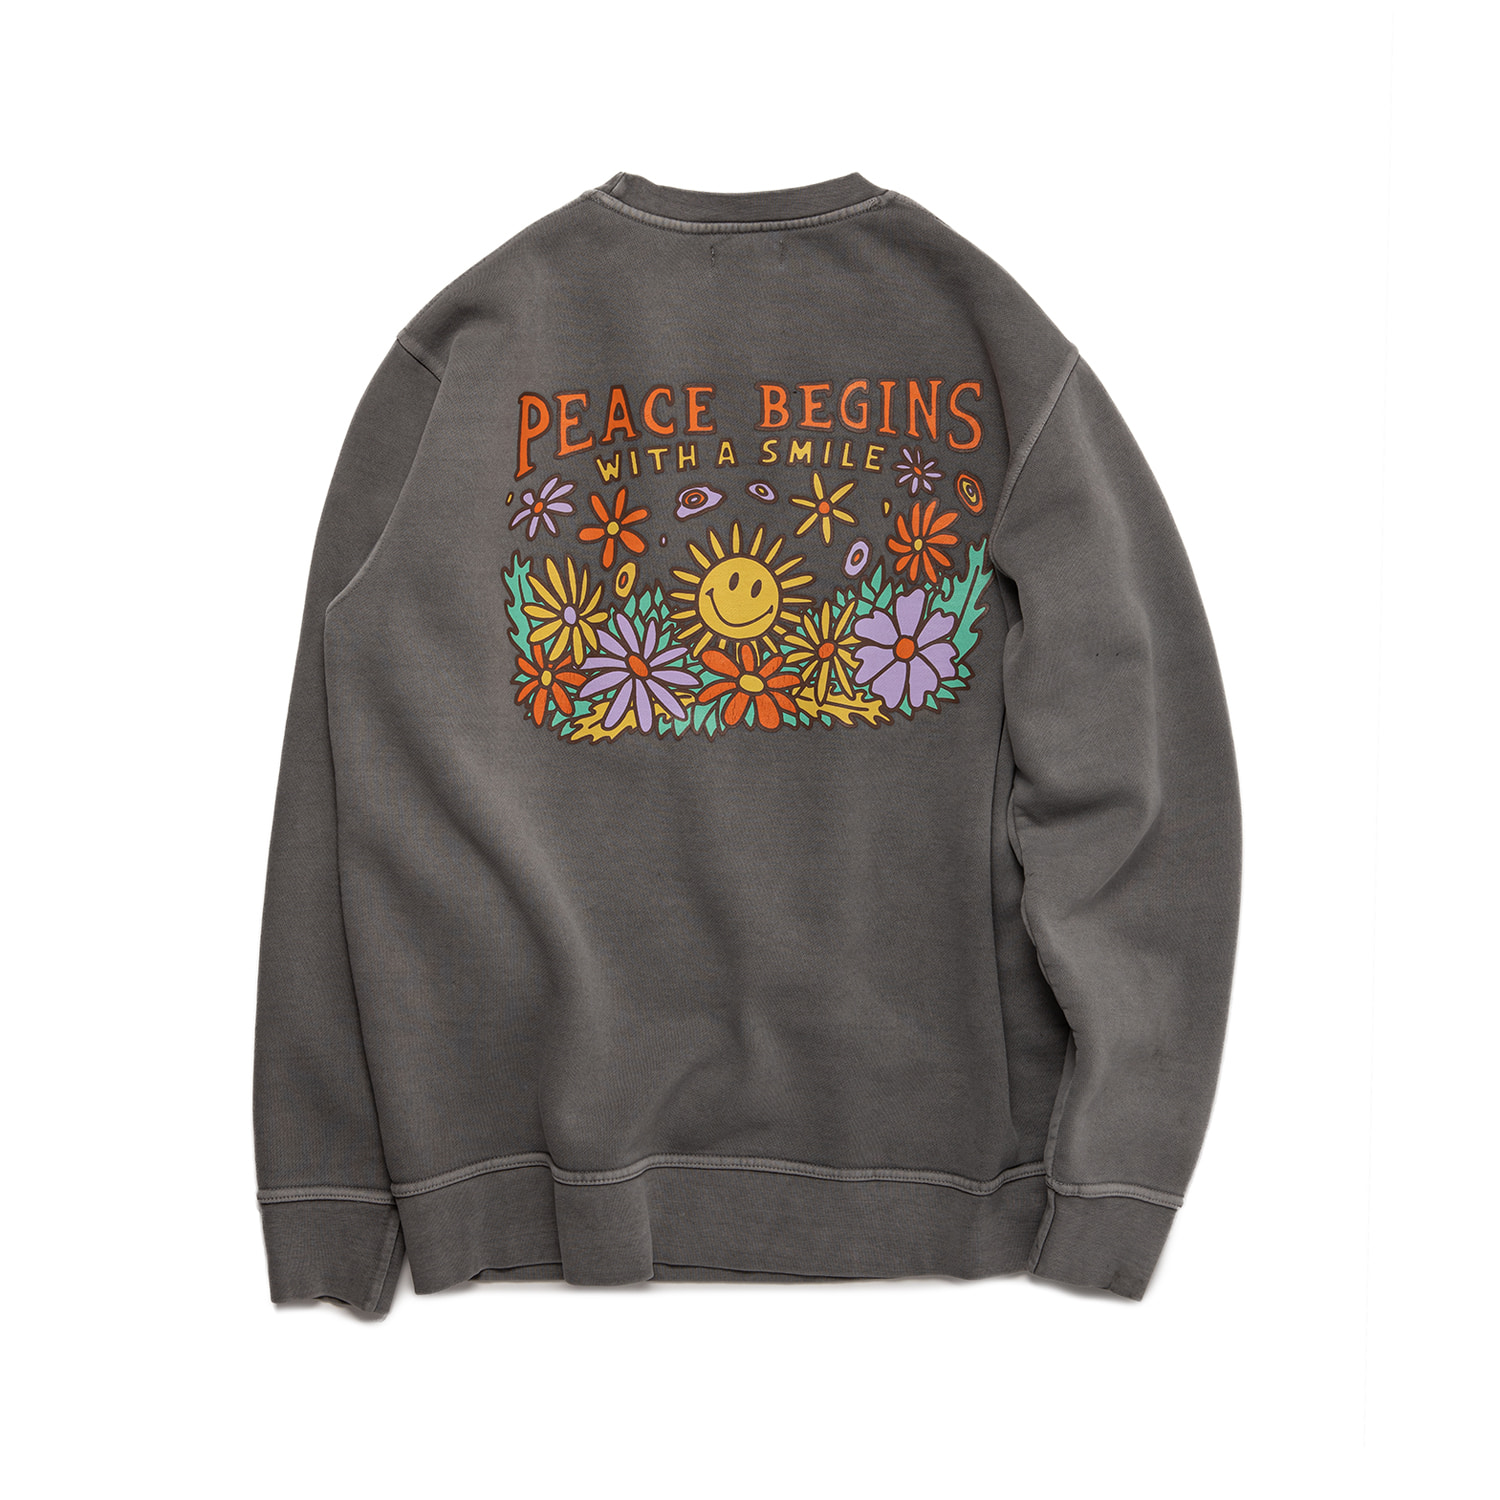 PEACE BEGINS SMILE SWEAT - COOL GRAY